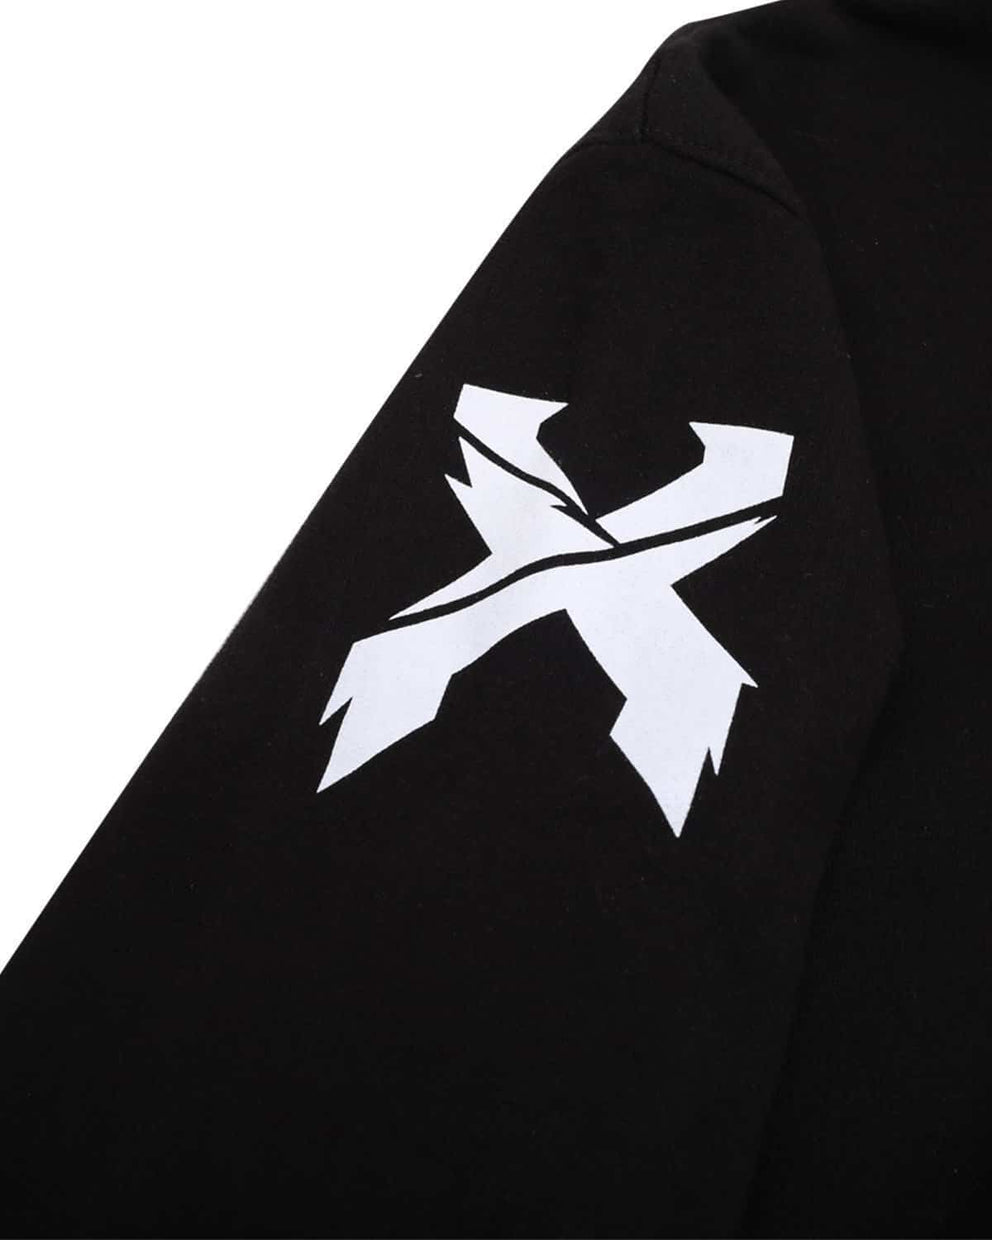 Excision 'Headbanger' Unisex Zip-Up Hoodie